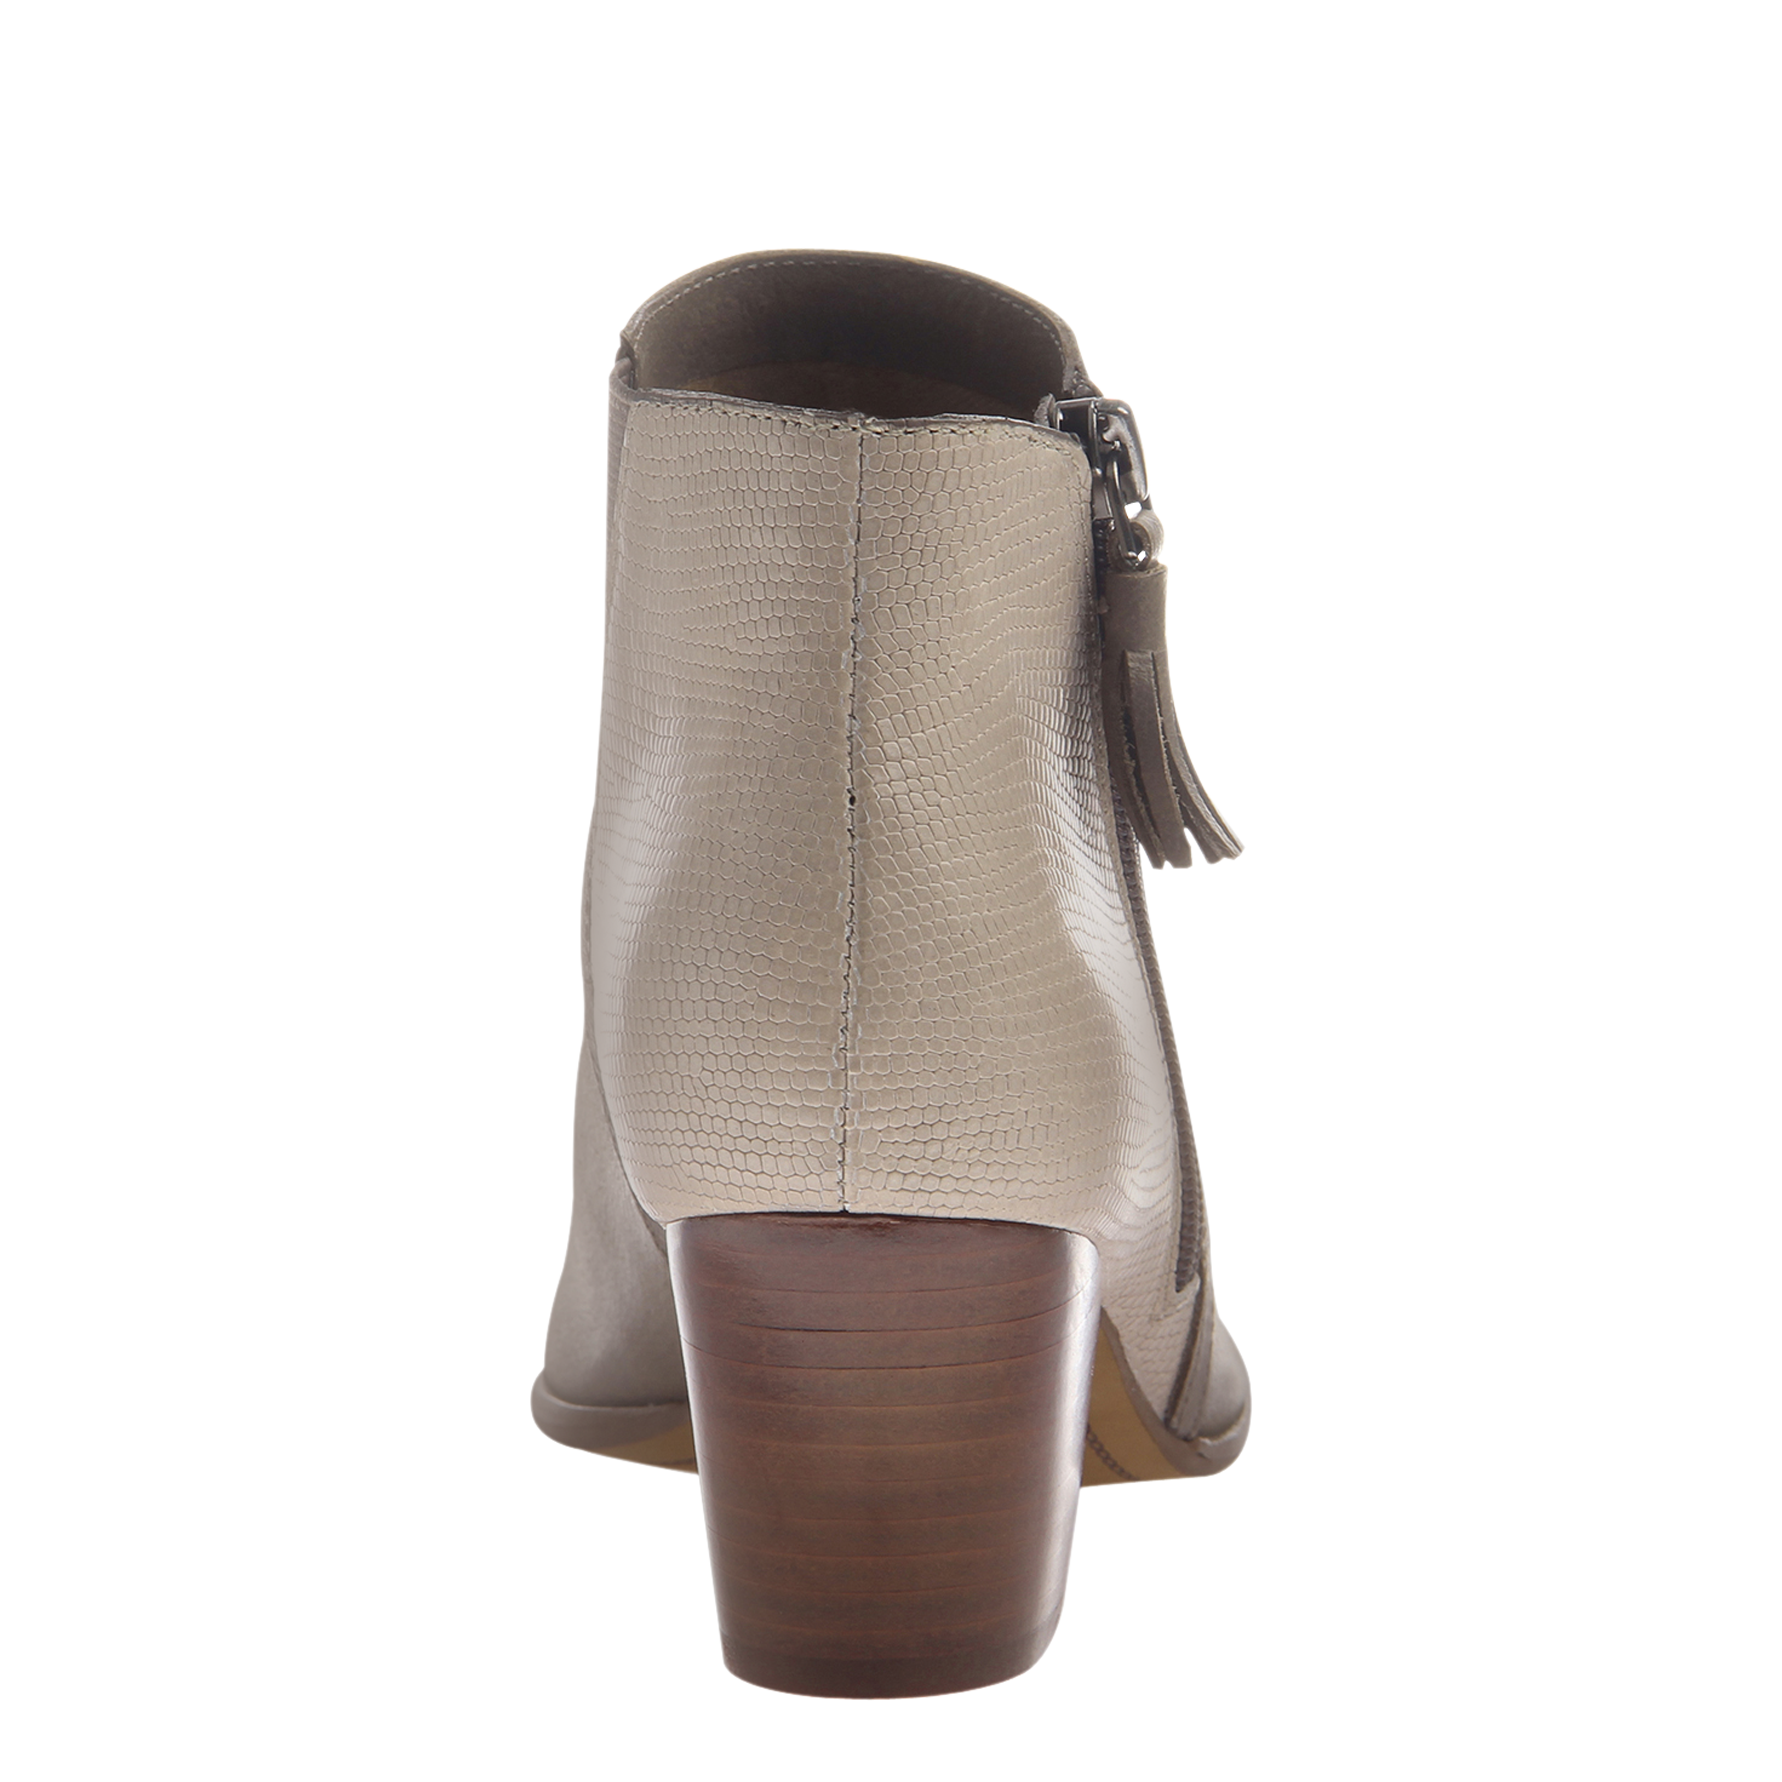 Nicole womens ankle boot Ania in timber wolf back view